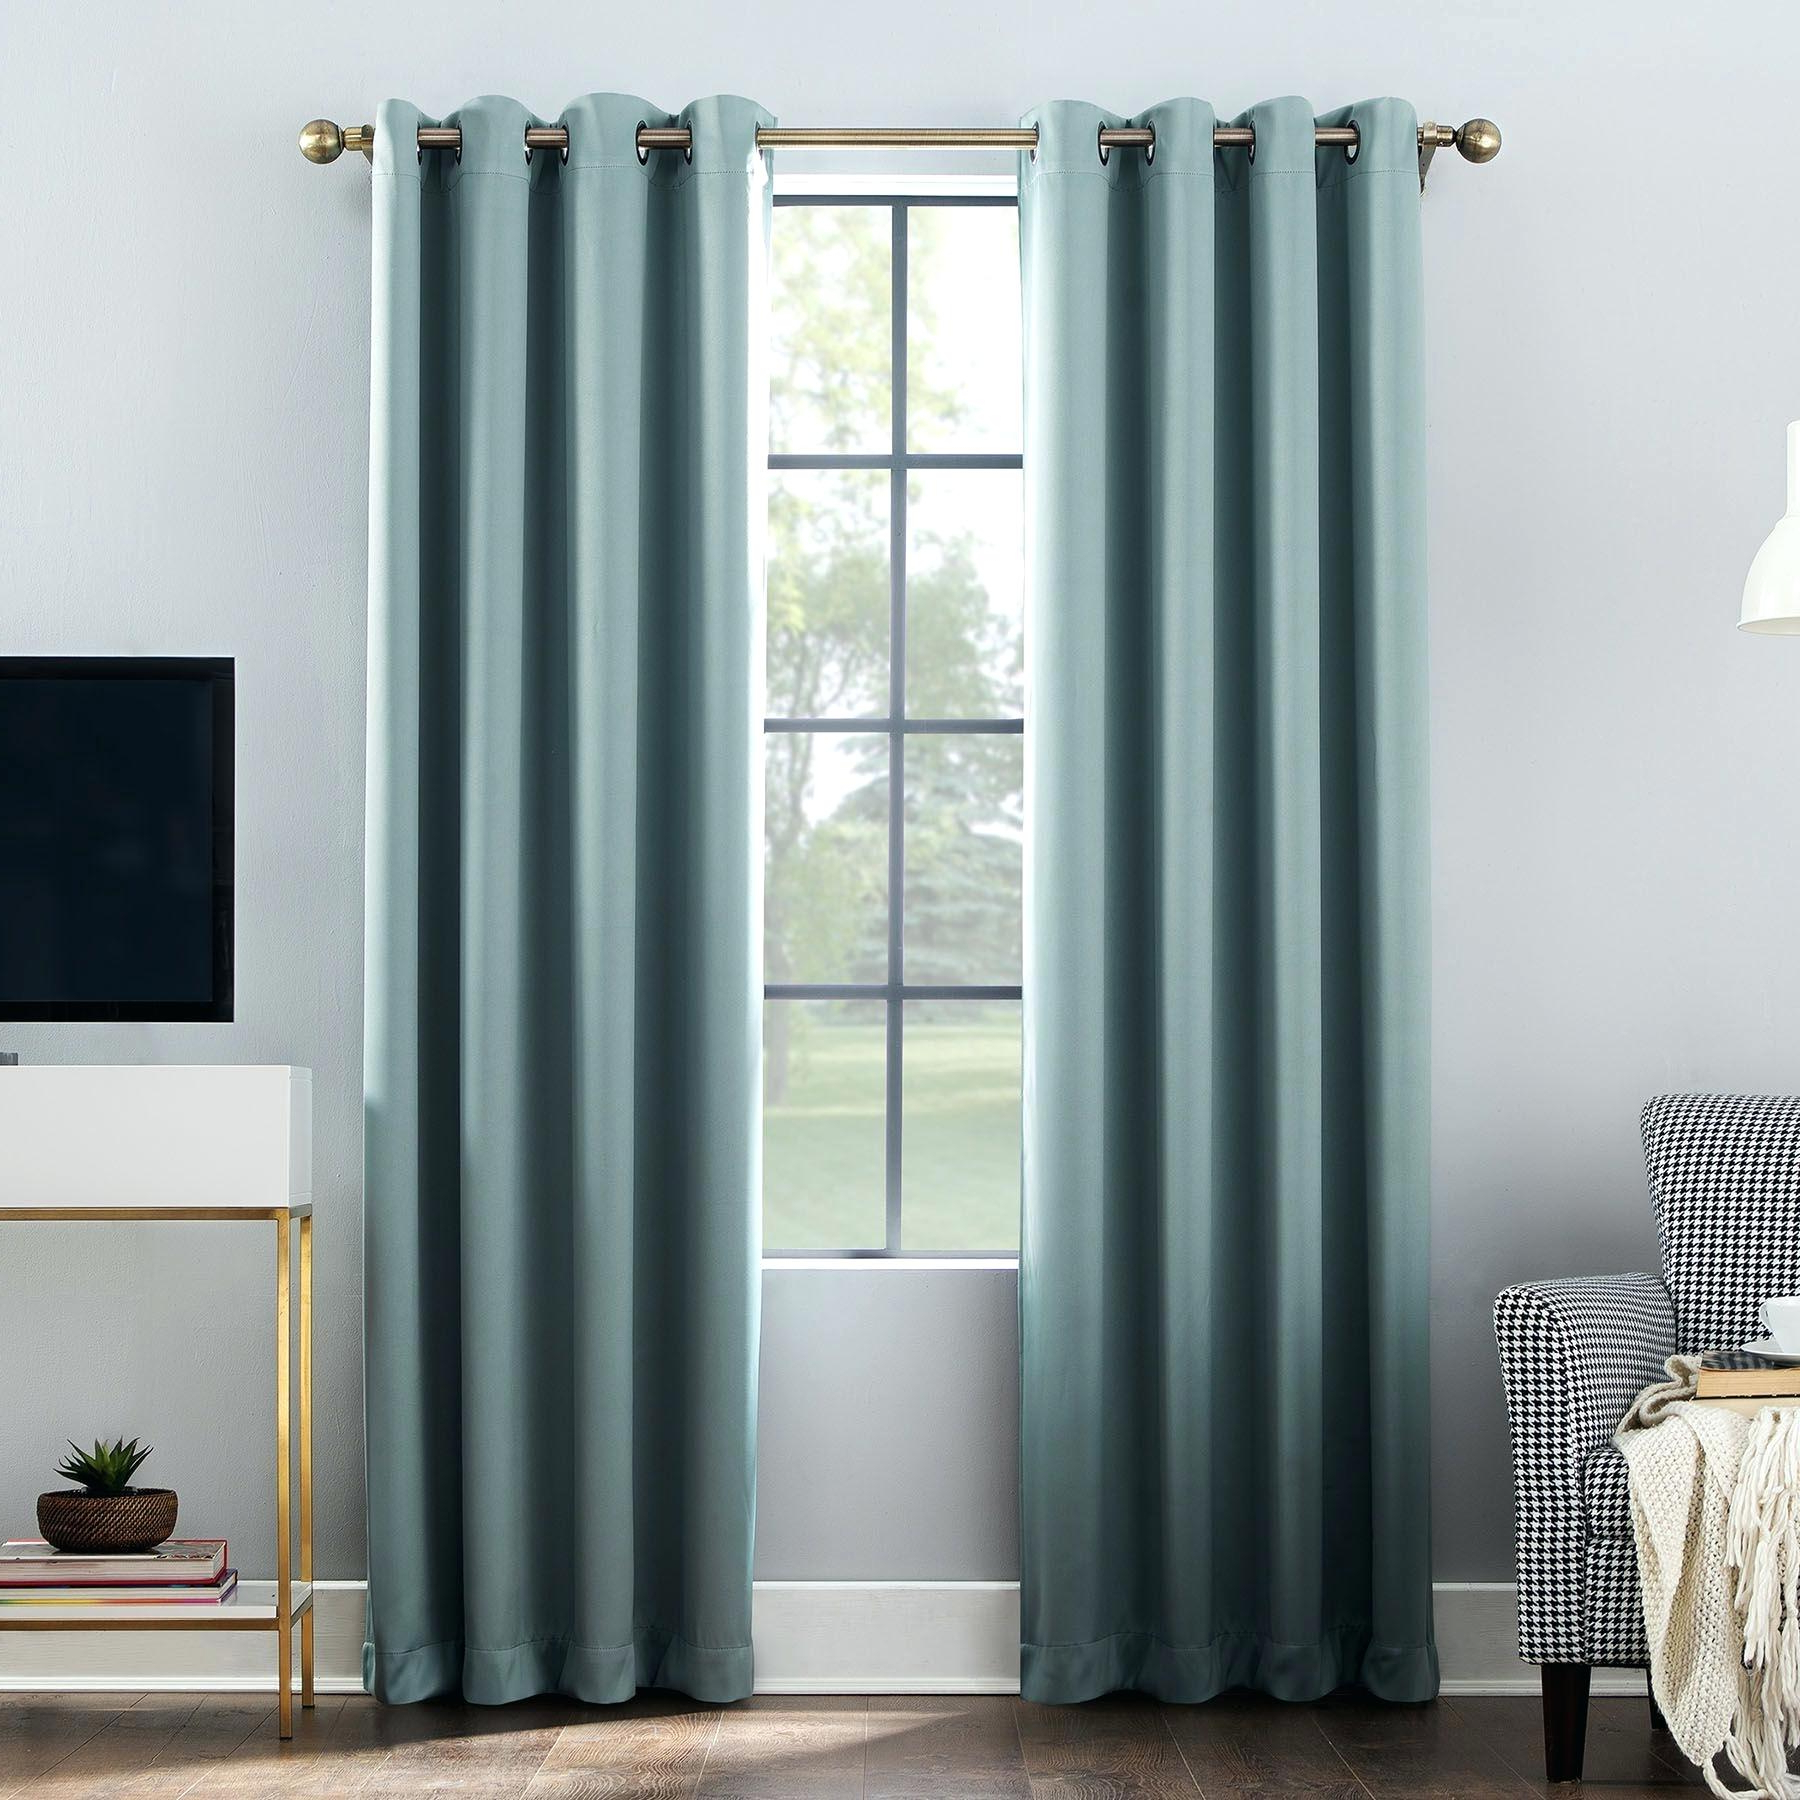 Marvellous Grommet Curtains Outdoor On Sale Blackout Diy Inside Well Known Ultimate Blackout Short Length Grommet Panels (View 8 of 20)